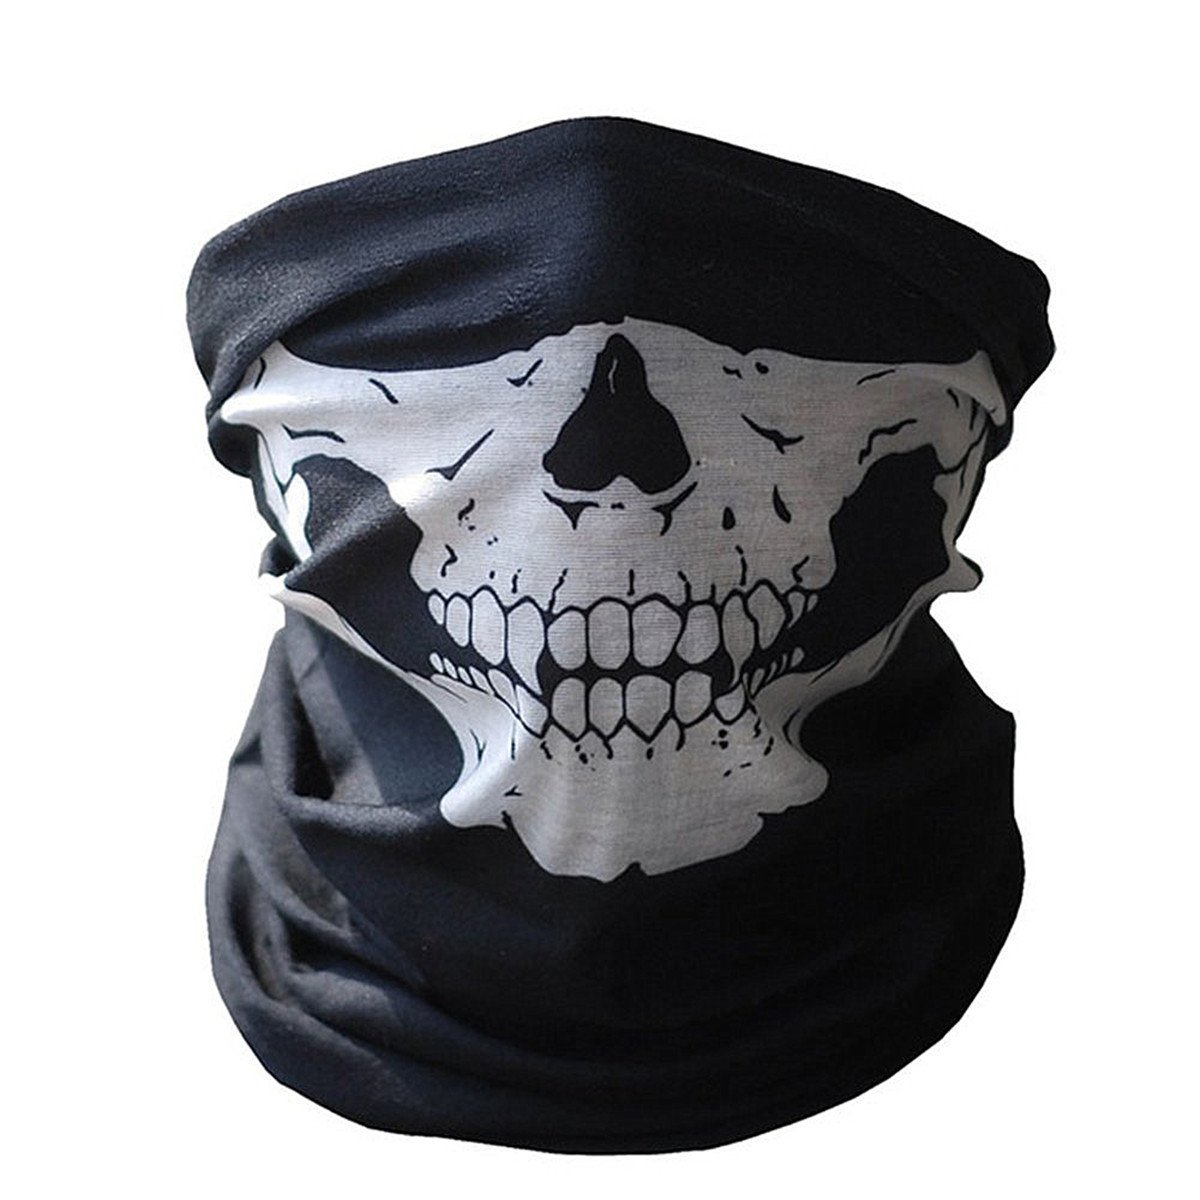 Skull Face Mask, WeiMay Black Half Face Stretchable Windproof Seamless Tubular Mask Bandana Scarf Headband Headwear Neck Warmer for Outdoor Motorcycle Bicycle MotorBike Activities